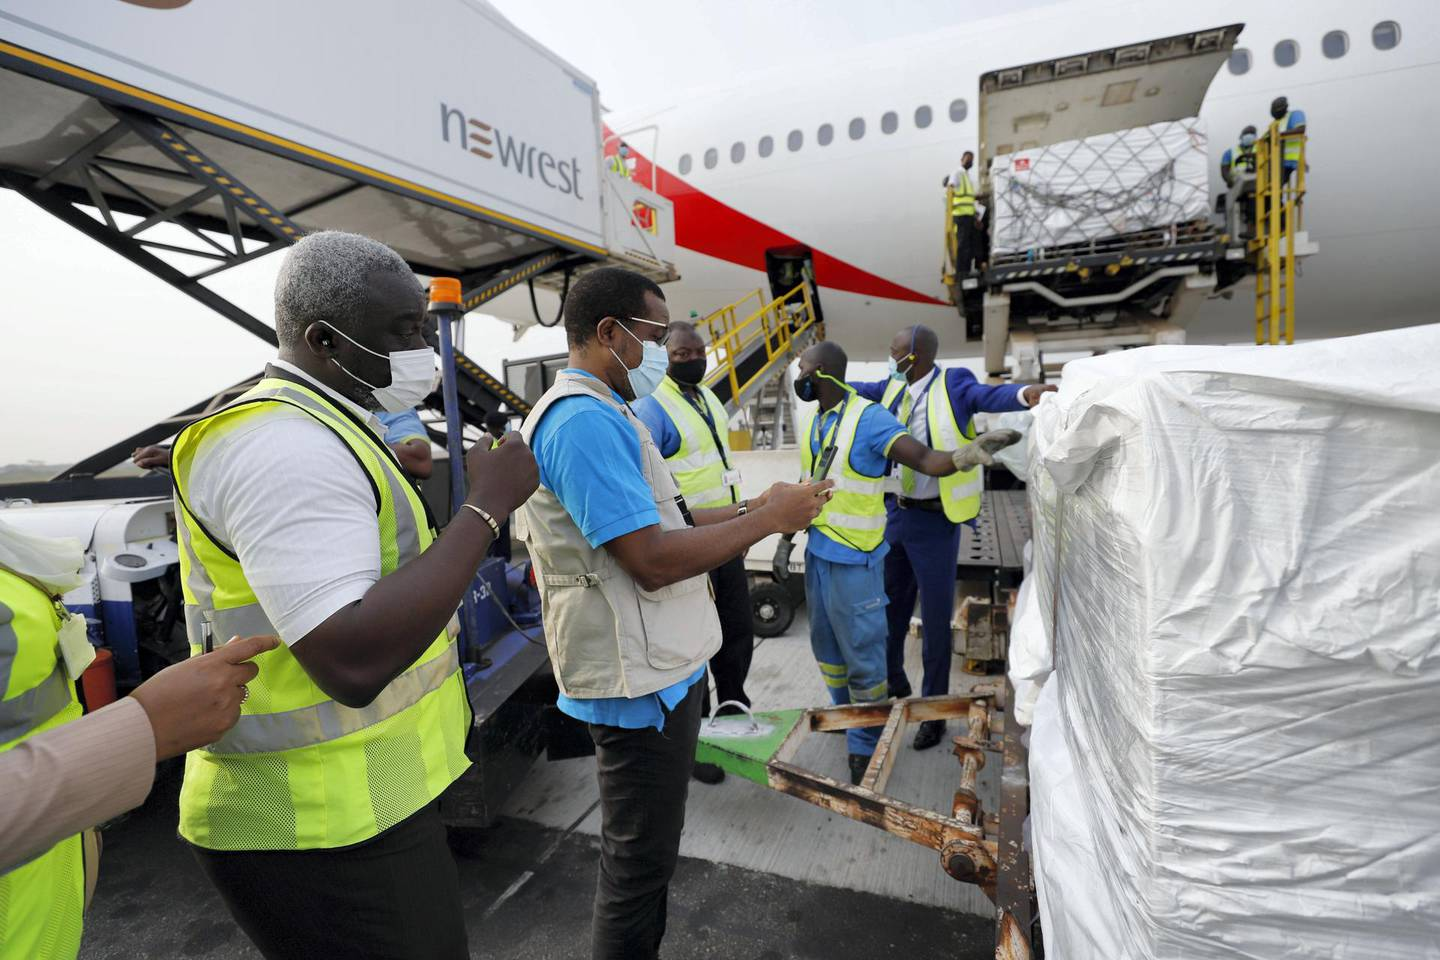 """On 24 February 2021, staff unloads the first shipment of COVID-19 vaccines distributed by the COVAX Facility at the Kotoka International Airport in Accra, Ghana's capital.   The shipment with 600 doses of the vaccine also represents the beginning of what should be the largest vaccine procurement and supply operation in history. The COVAX Facility plans to deliver close to 2 billion doses of COVID-19 vaccines this year. This is an unprecedented global effort to make sure all citizens have access to vaccines. Anne-Claire Dufay UNICEF UNICEF Representative in Ghana and WHO country representative Francis Kasolo said in a joint statement: After a year of disruptions due to the COVID-19 pandemic, with more than 80,700 Ghanaians getting infected with the virus and over 580 lost lives, the path to recovery for the people of Ghana can finally begin.  """"This is a momentous occasion, as the arrival of the COVID-19 vaccines into Ghana is critical in bringing the pandemic to an end,""""   These 600,000 COVAX vaccines are part of an initial tranche of deliveries of the AstraZeneca / Oxford vaccine licensed to the Serum Institute of India, which represent part of the first wave of COVID vaccines headed to several low and middle-income countries. """"The shipments also represent the beginning of what should be the largest vaccine procurement and supply operation in history. The COVAX Facility plans to deliver close to 2 billion doses of COVID-19 vaccines this year. This is an unprecedented global effort to make sure all citizens have access to vaccines. """"We are pleased that Ghana has become the first country to receive the COVID-19 vaccines from the COVAX Facility. We congratulate the Government of Ghana – especially the Ministry of Health, Ghana Health Service, and Ministry of Information - for its relentless efforts to protect the population. As part of the UN Country Team in Ghana, UNICEF and WHO reiterate our commitment to support the vaccination campaign and contain the spread"""